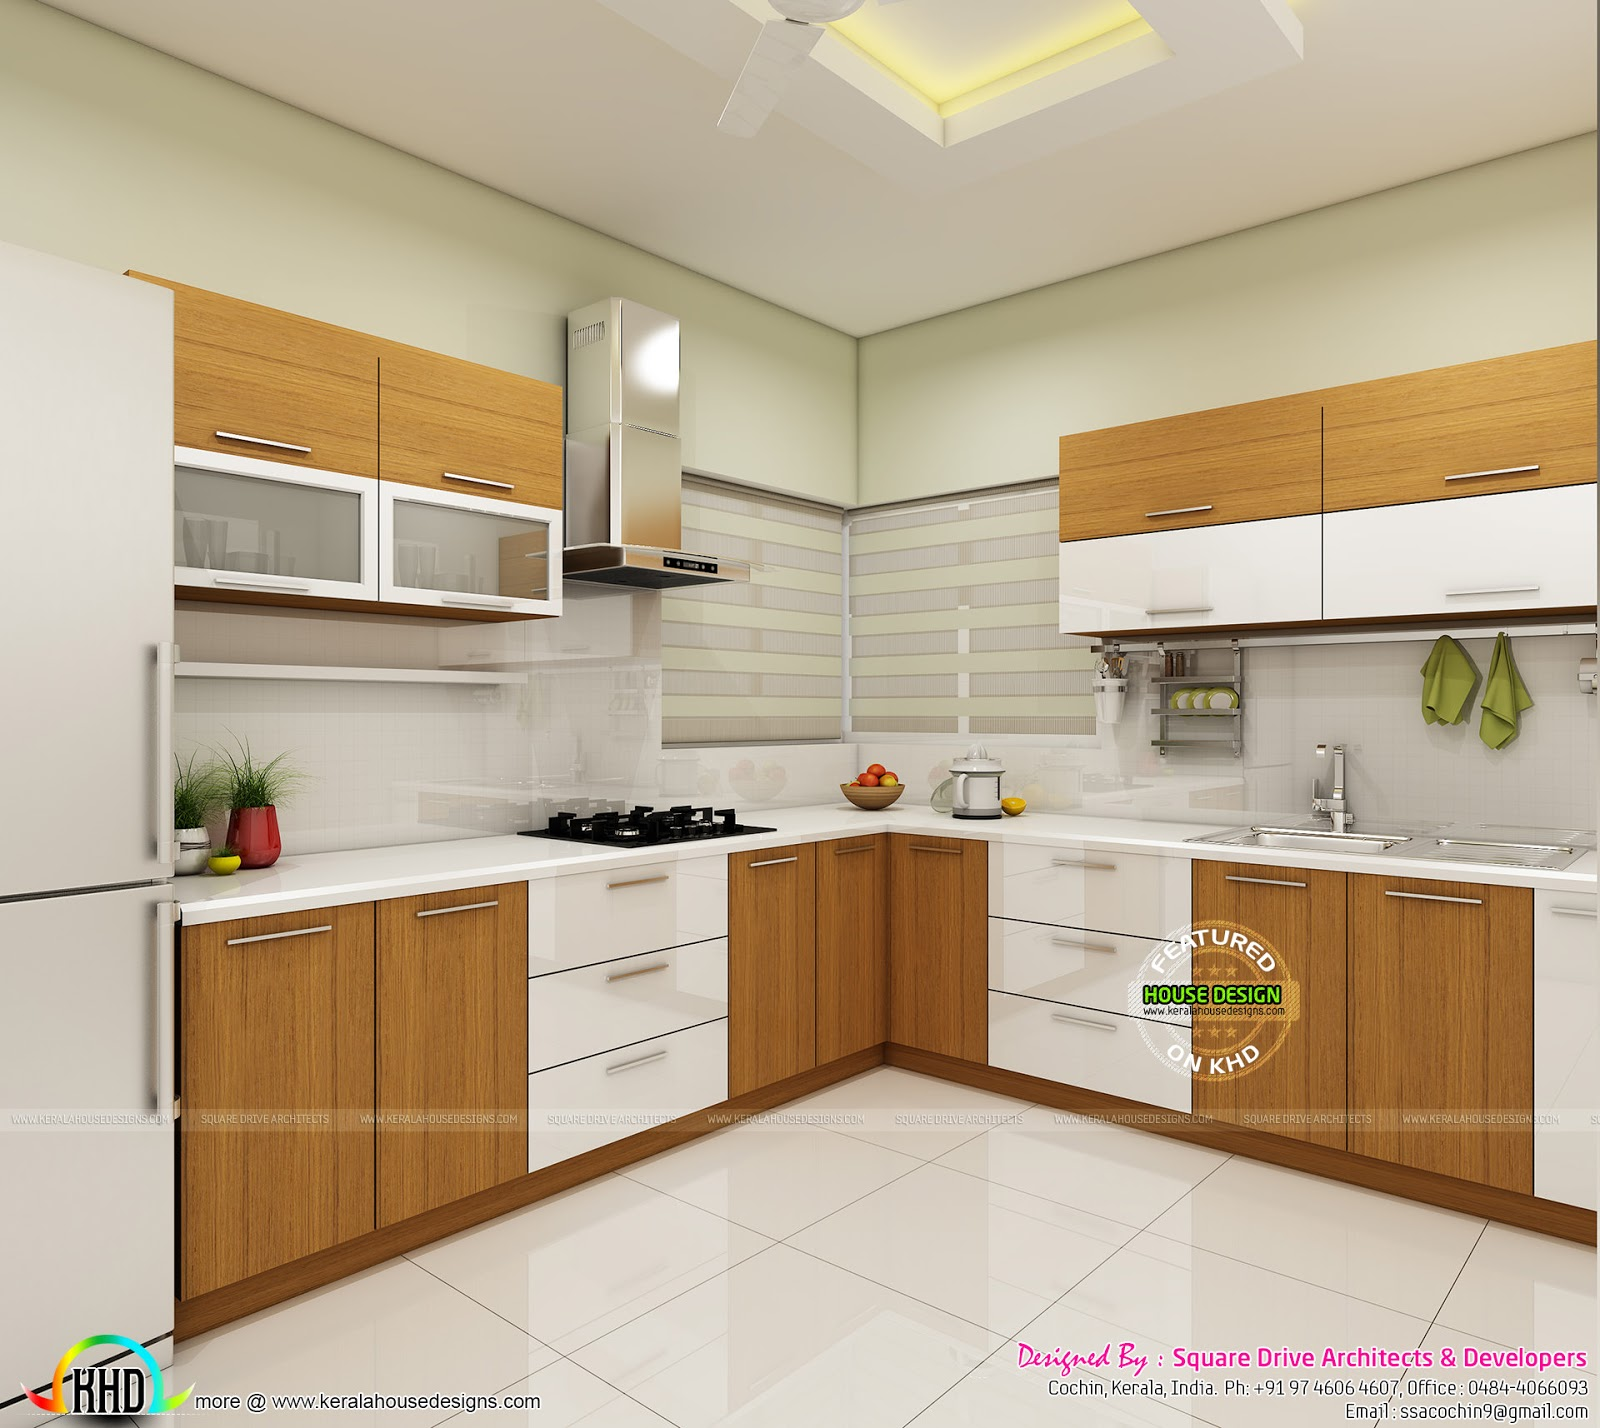 Modern home interiors of bedroom, dining, kitchen - Kerala ...